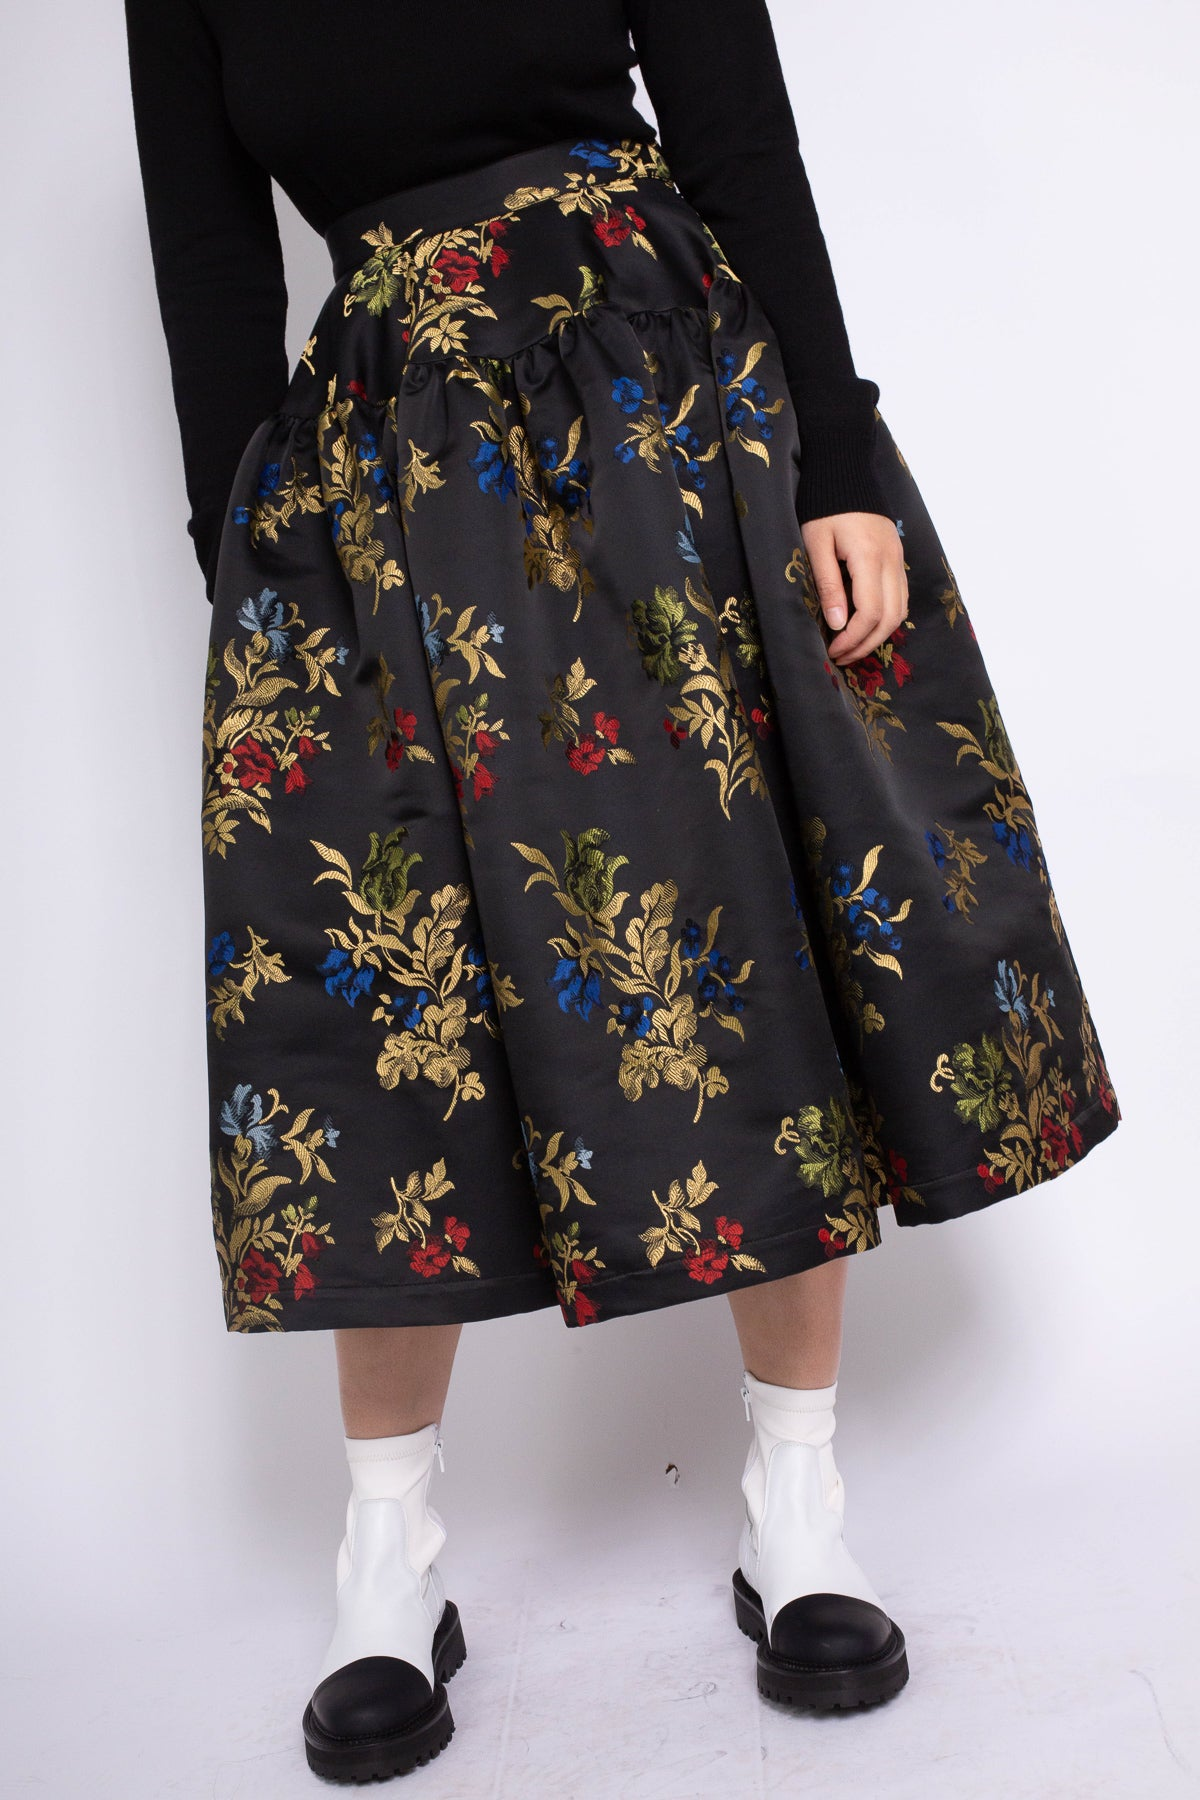 PRE-OWNED / GATHERED YOKE SKIRT IN BLACK FLORAL BROCADE